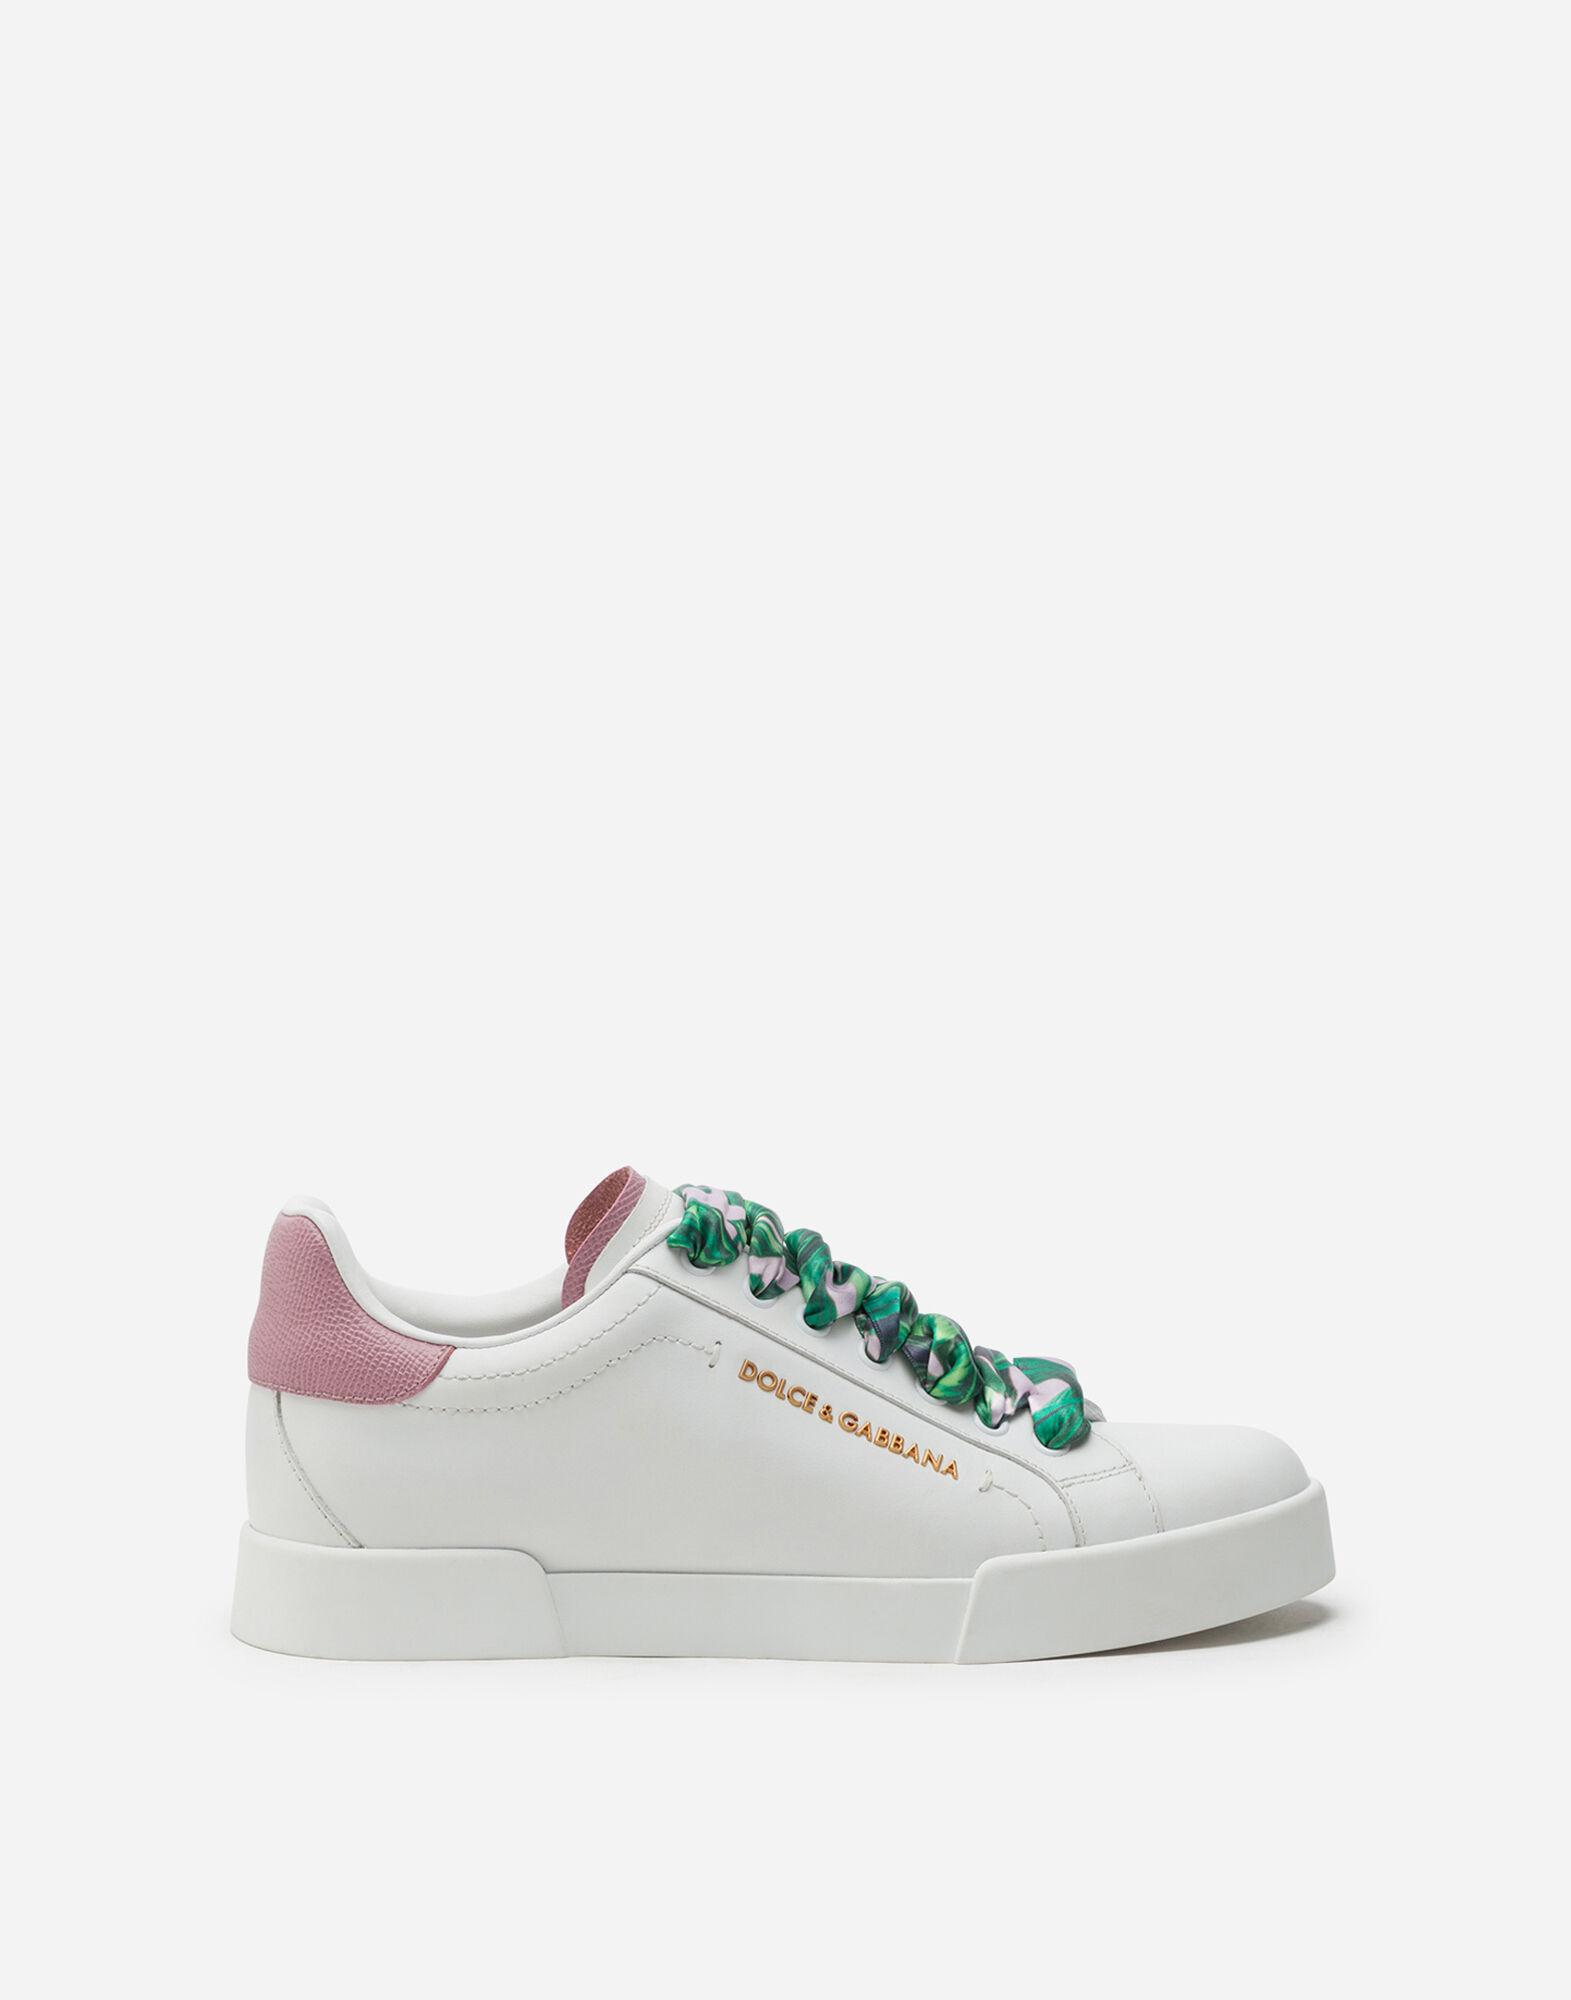 Portofino sneakers in nappa calfskin with lettering and printed silk laces